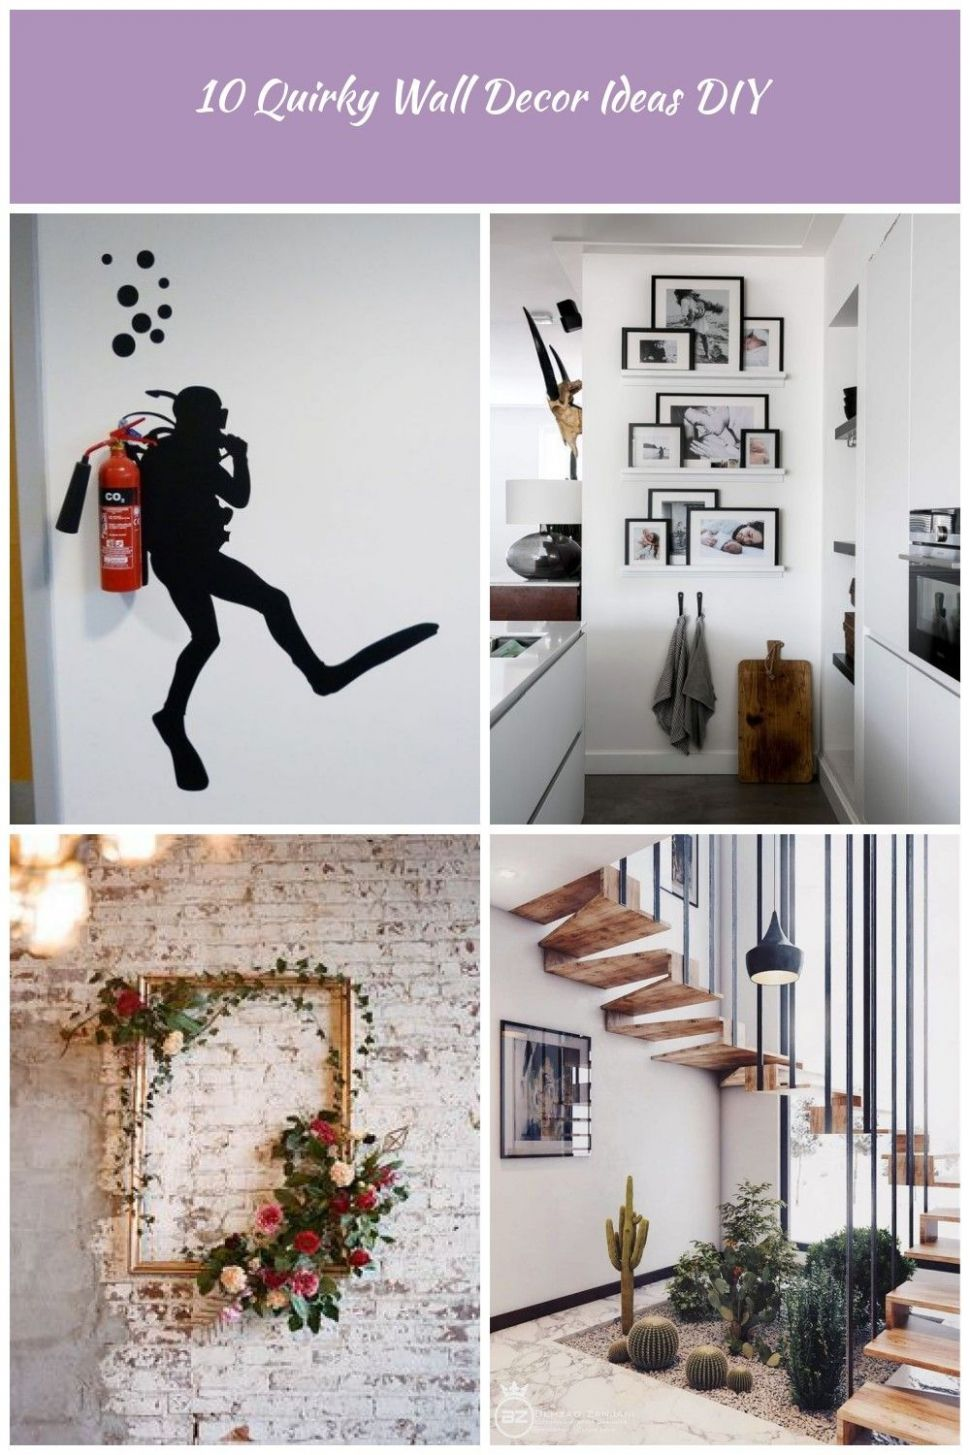 HomelySmart | 11 Quirky Wall Decorating Ideas diy Interior design ..